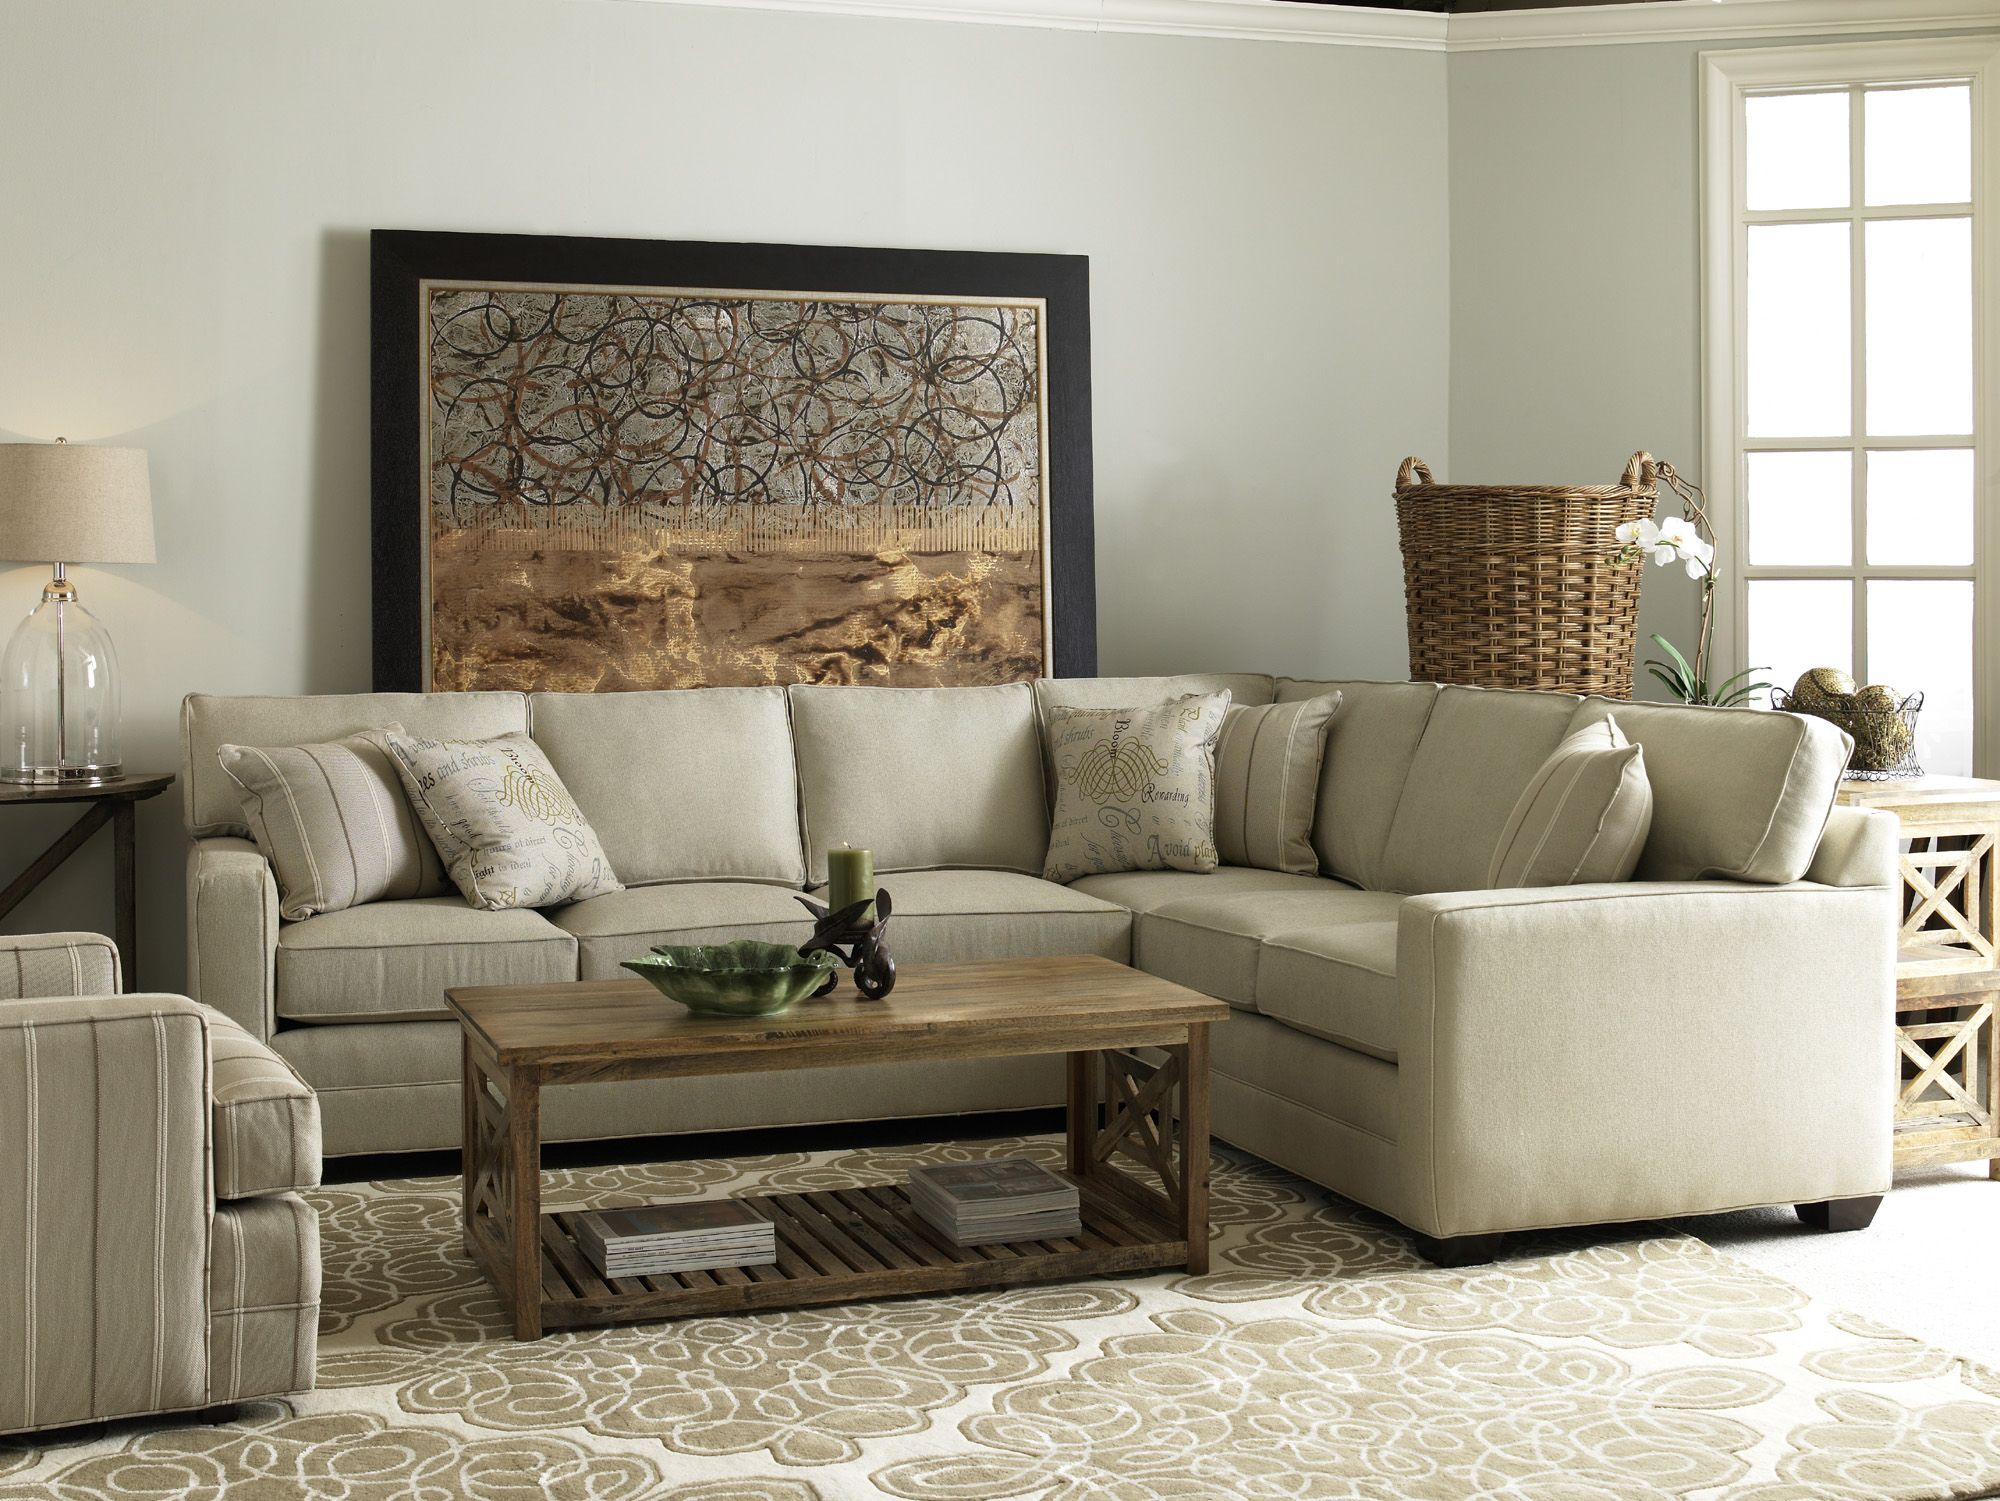 Want to build your perfect sofa The 1100 Options collection from